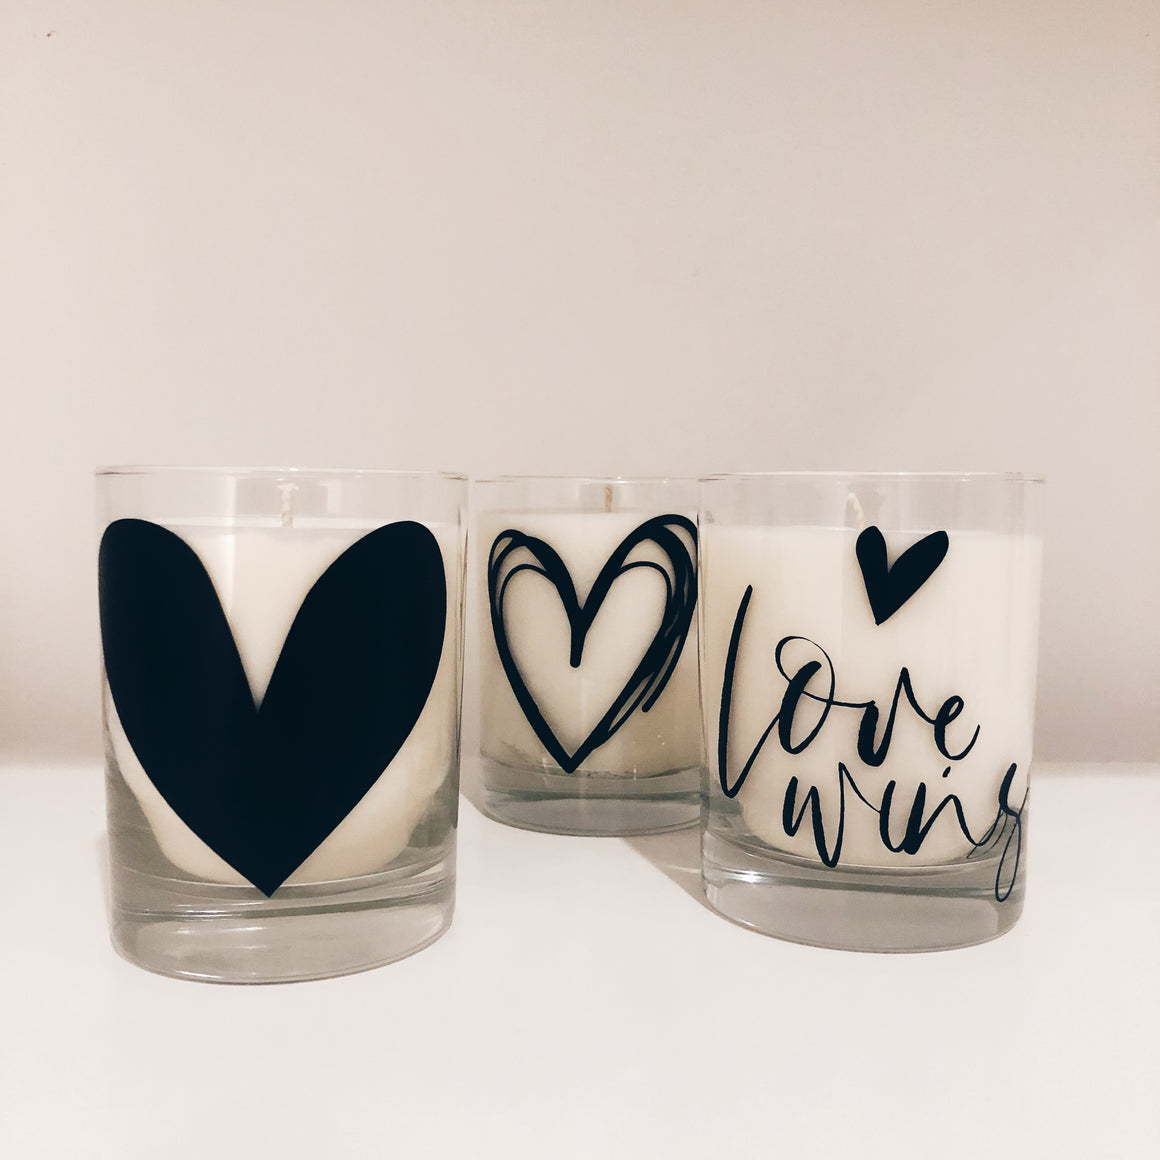 Case of Love Wins Collection - 13 oz - Rocks Tumbler Vegan Scented Soy Candle